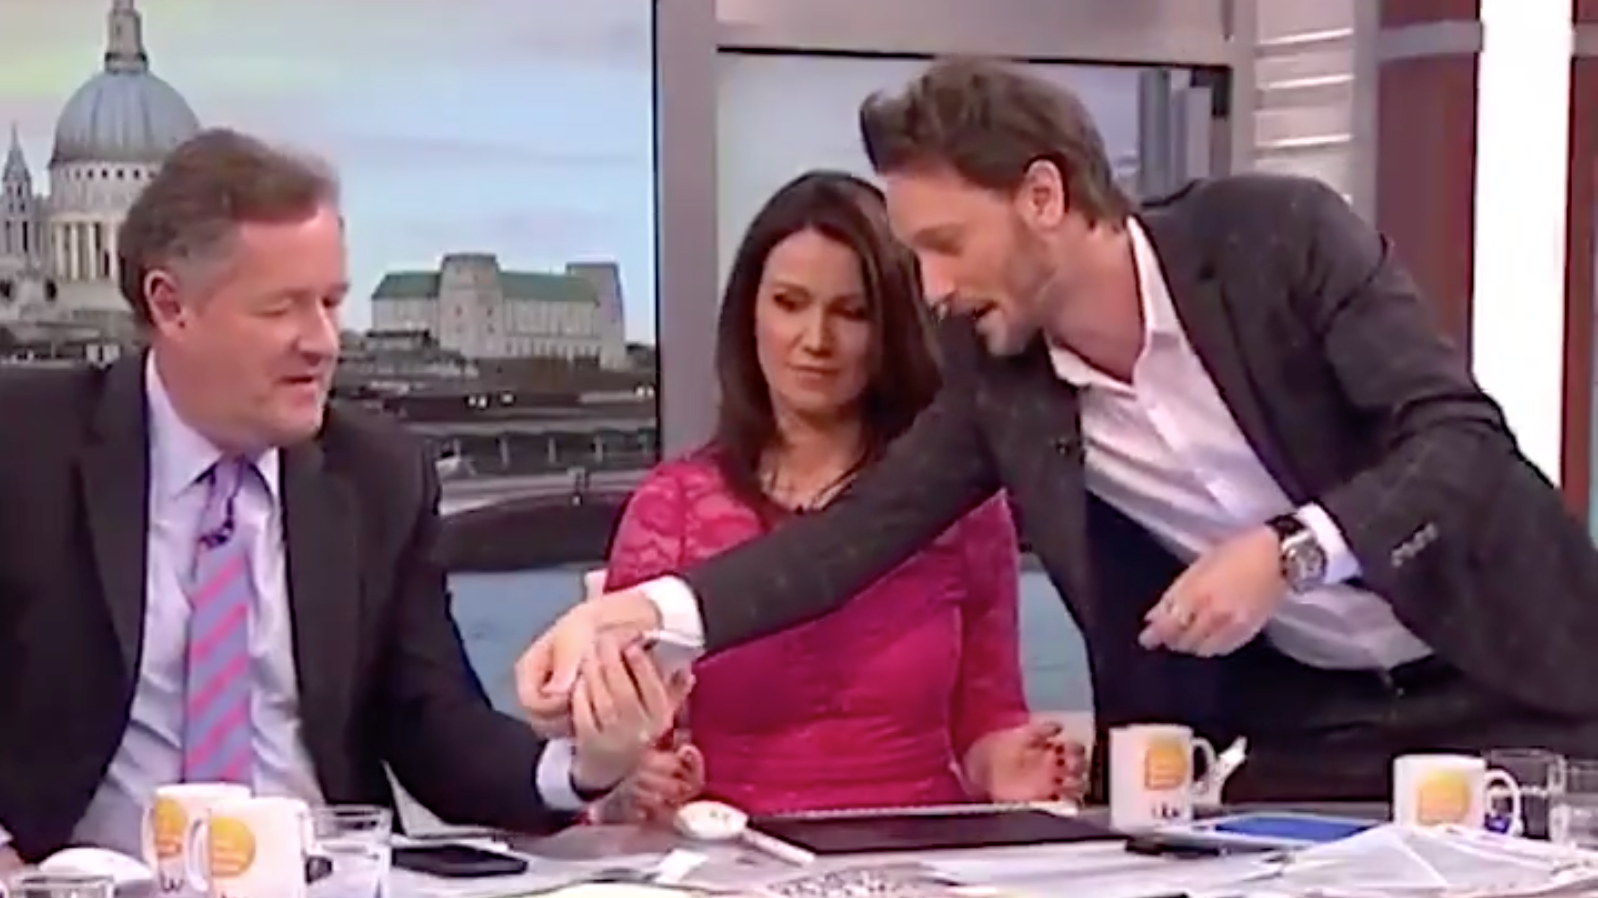 'Mentalist' Stuns Piers Morgan By Guessing His Pin Number On 'Good Morning Britain'